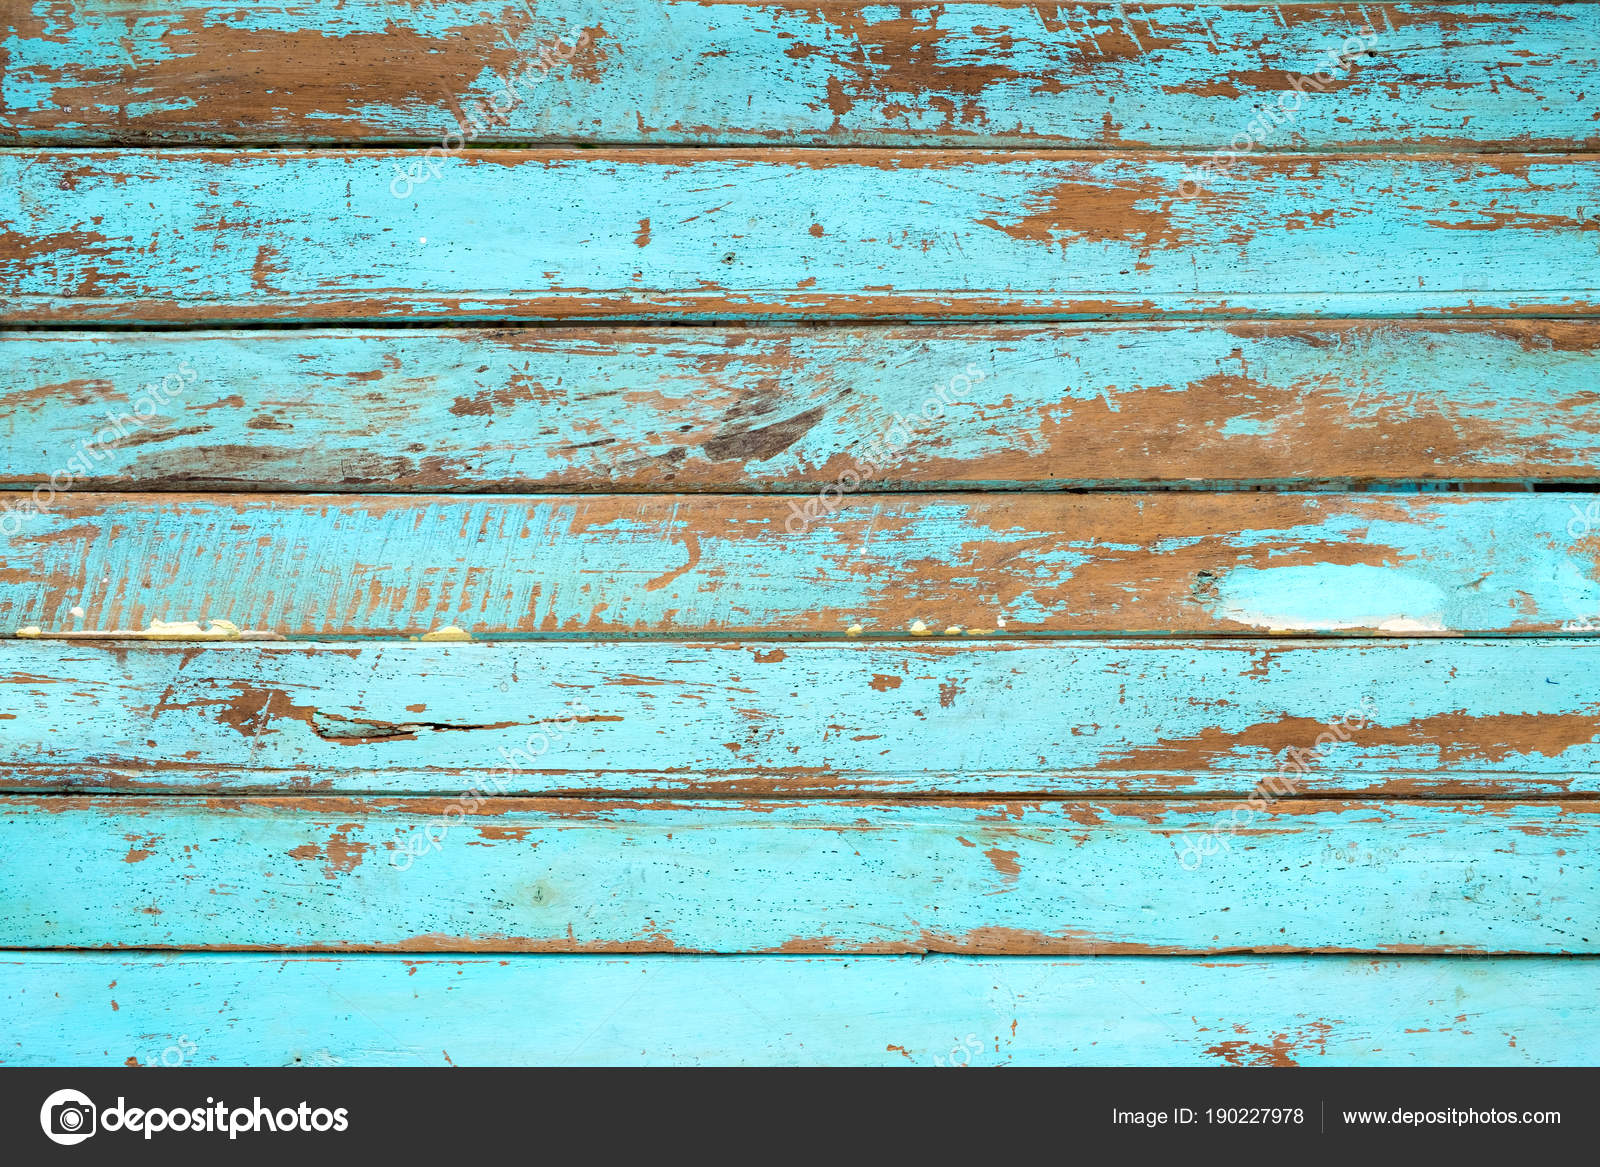 Vintage Beach Wood Background Old Weathered Wooden Plank